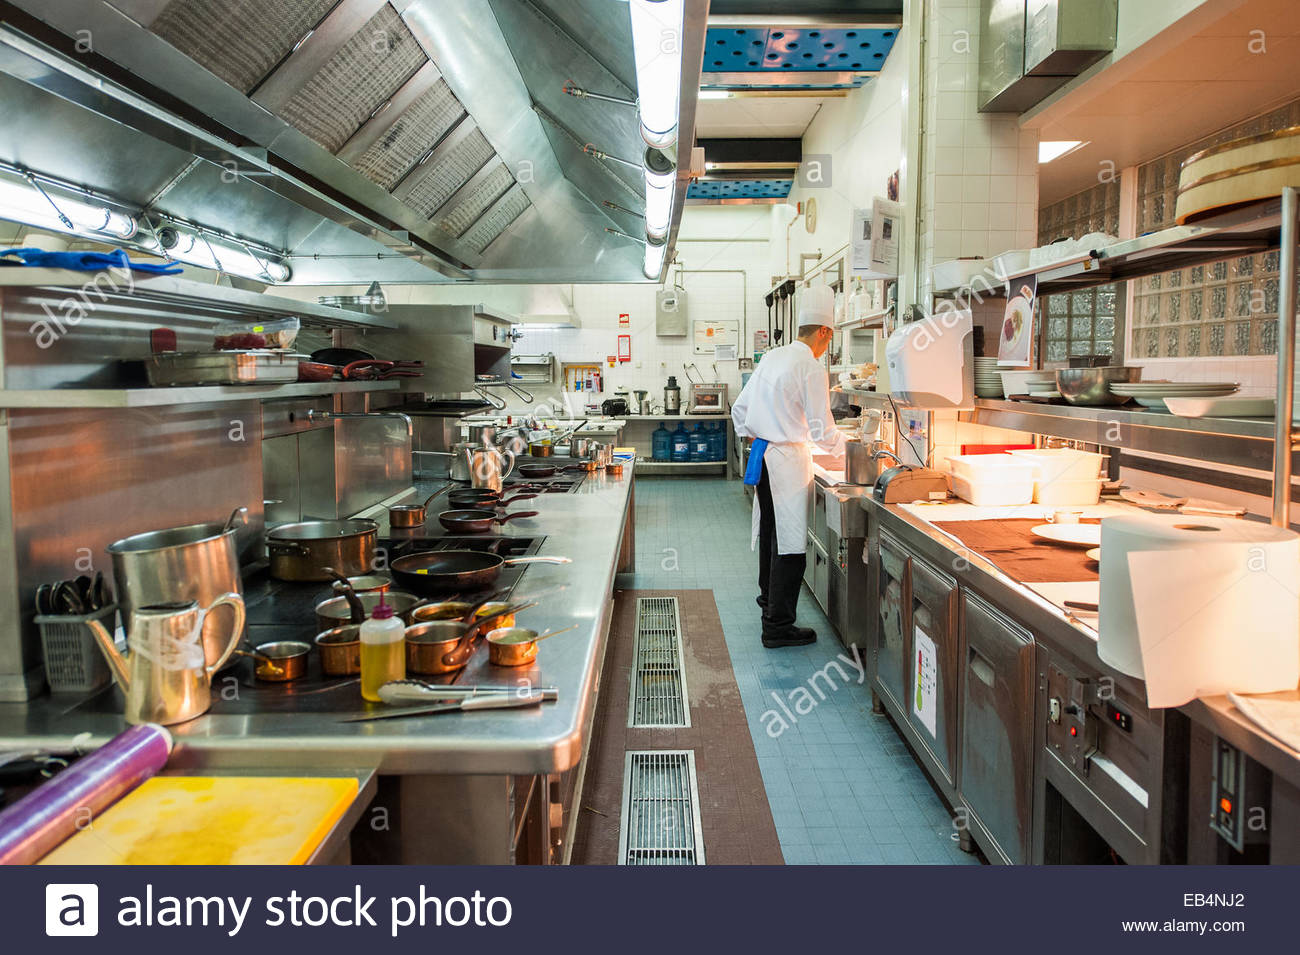 Behind the scenes of a professional kitchen in Lisbon, Portugal. - Stock Image